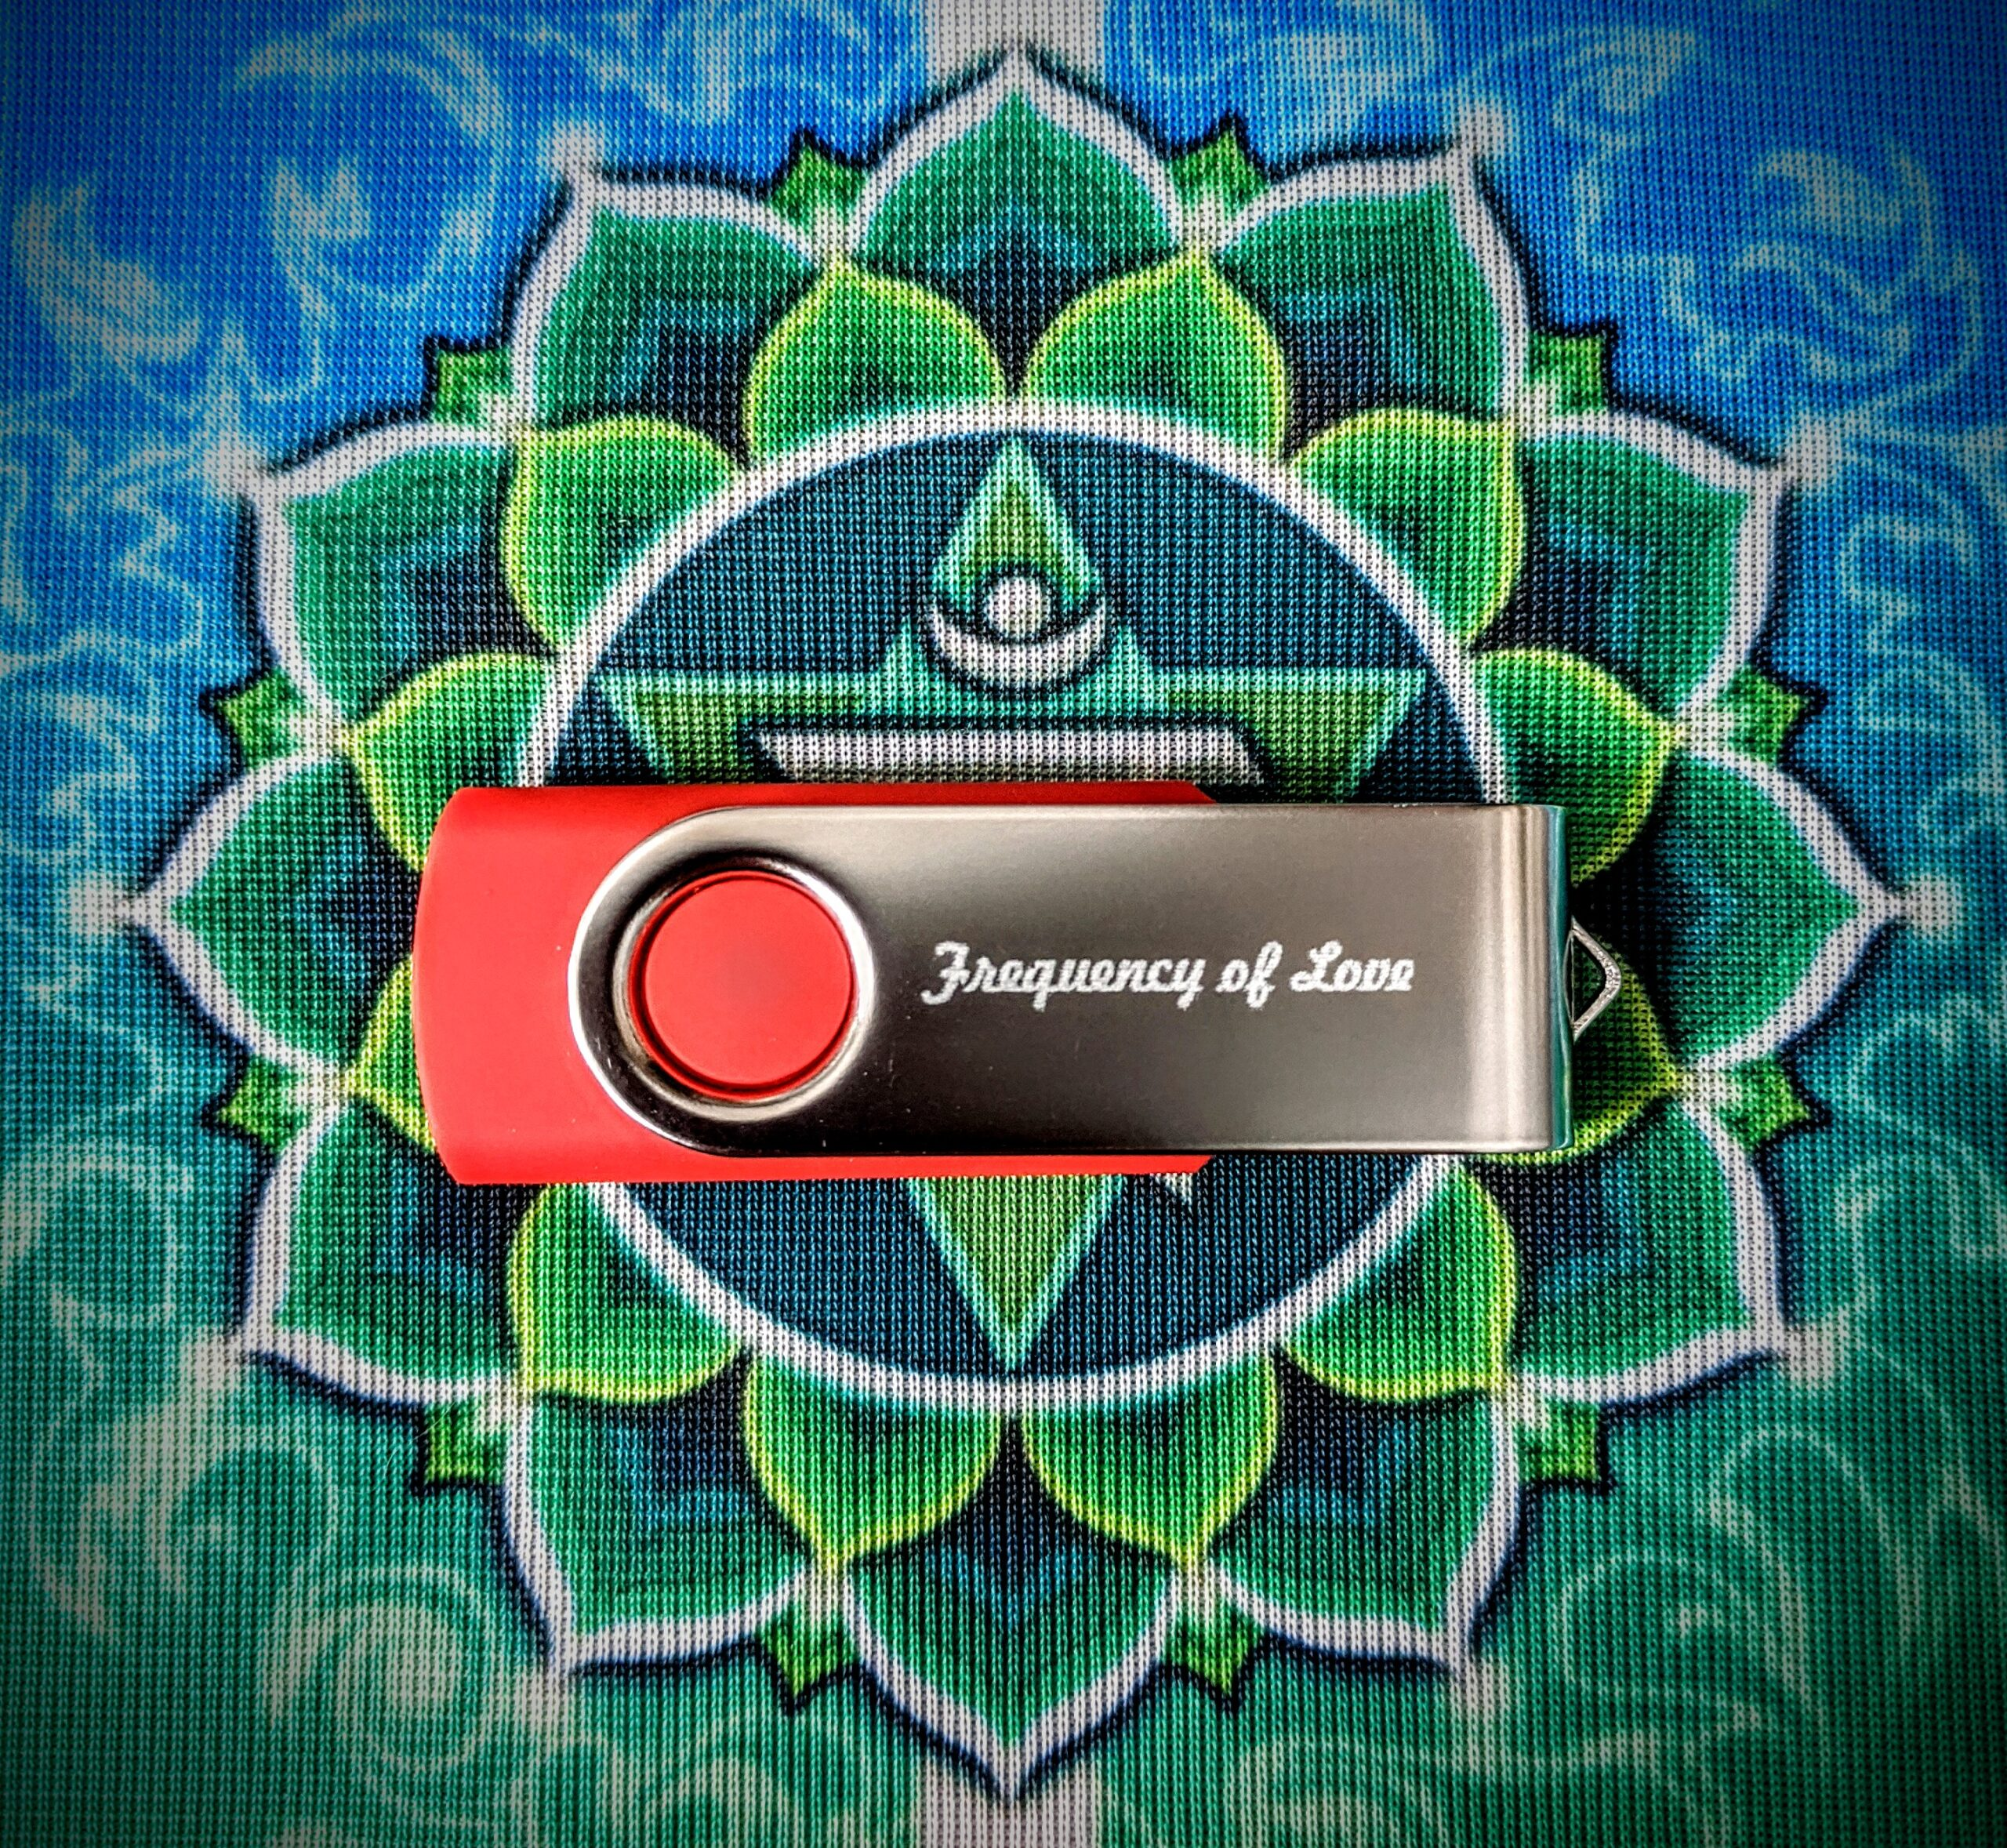 Frequency of LOVE - USB Drive with Liner Notes and Music